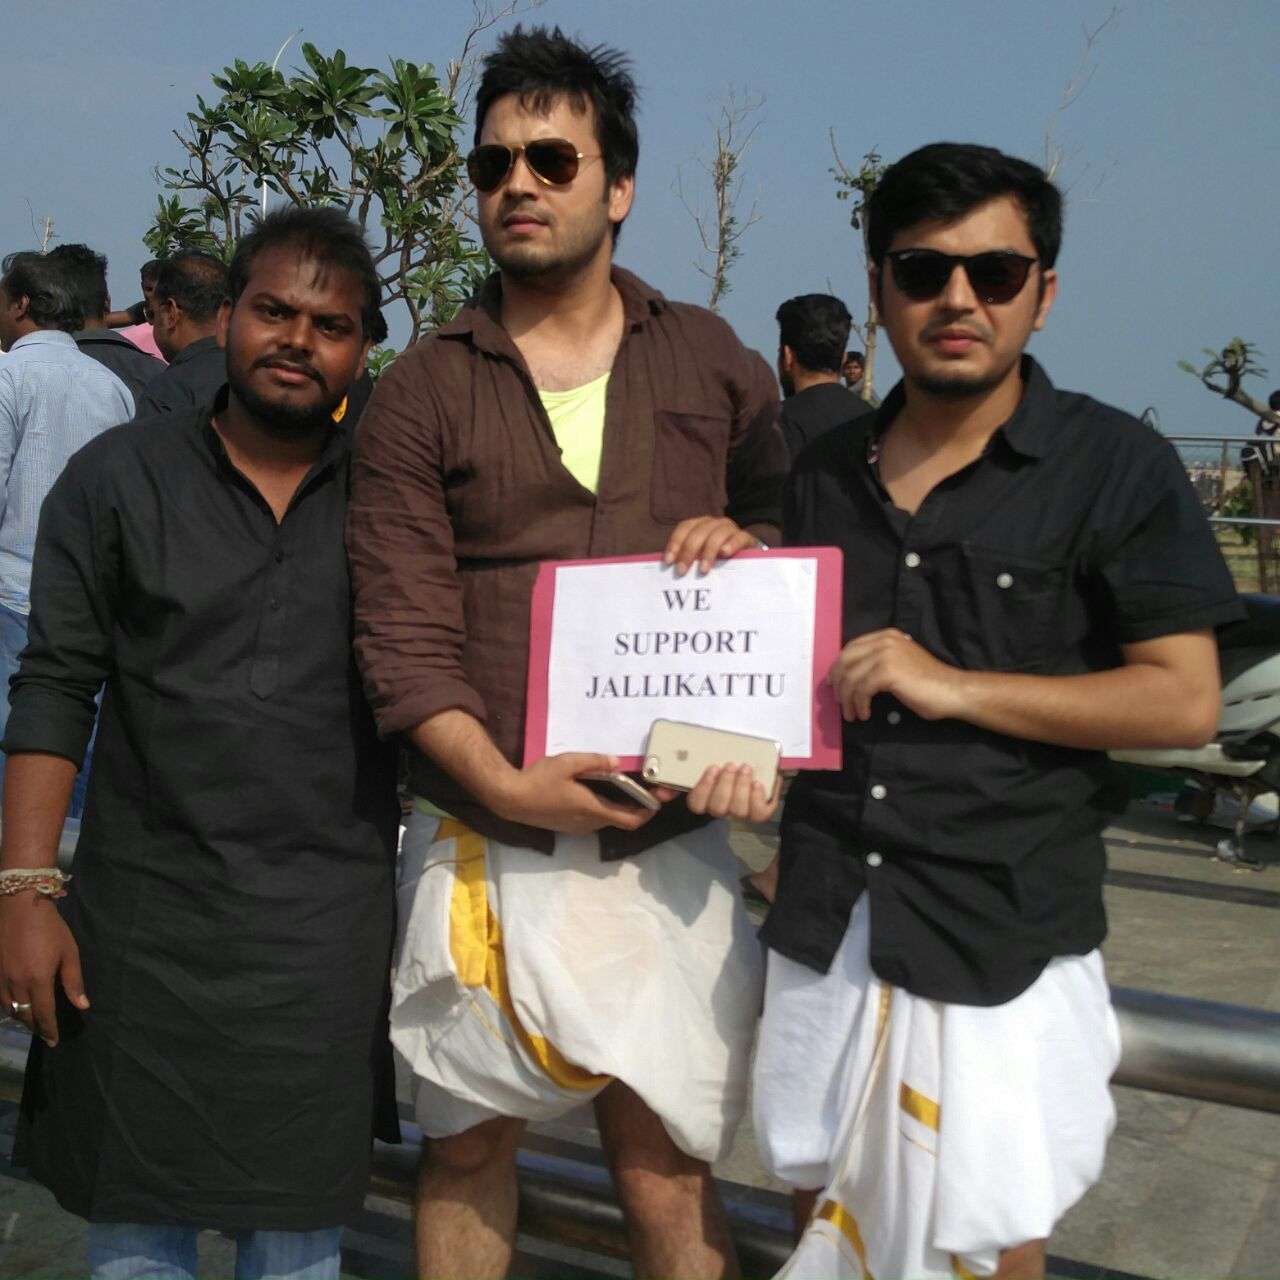 Bhowmik (right) supports jallikattu.